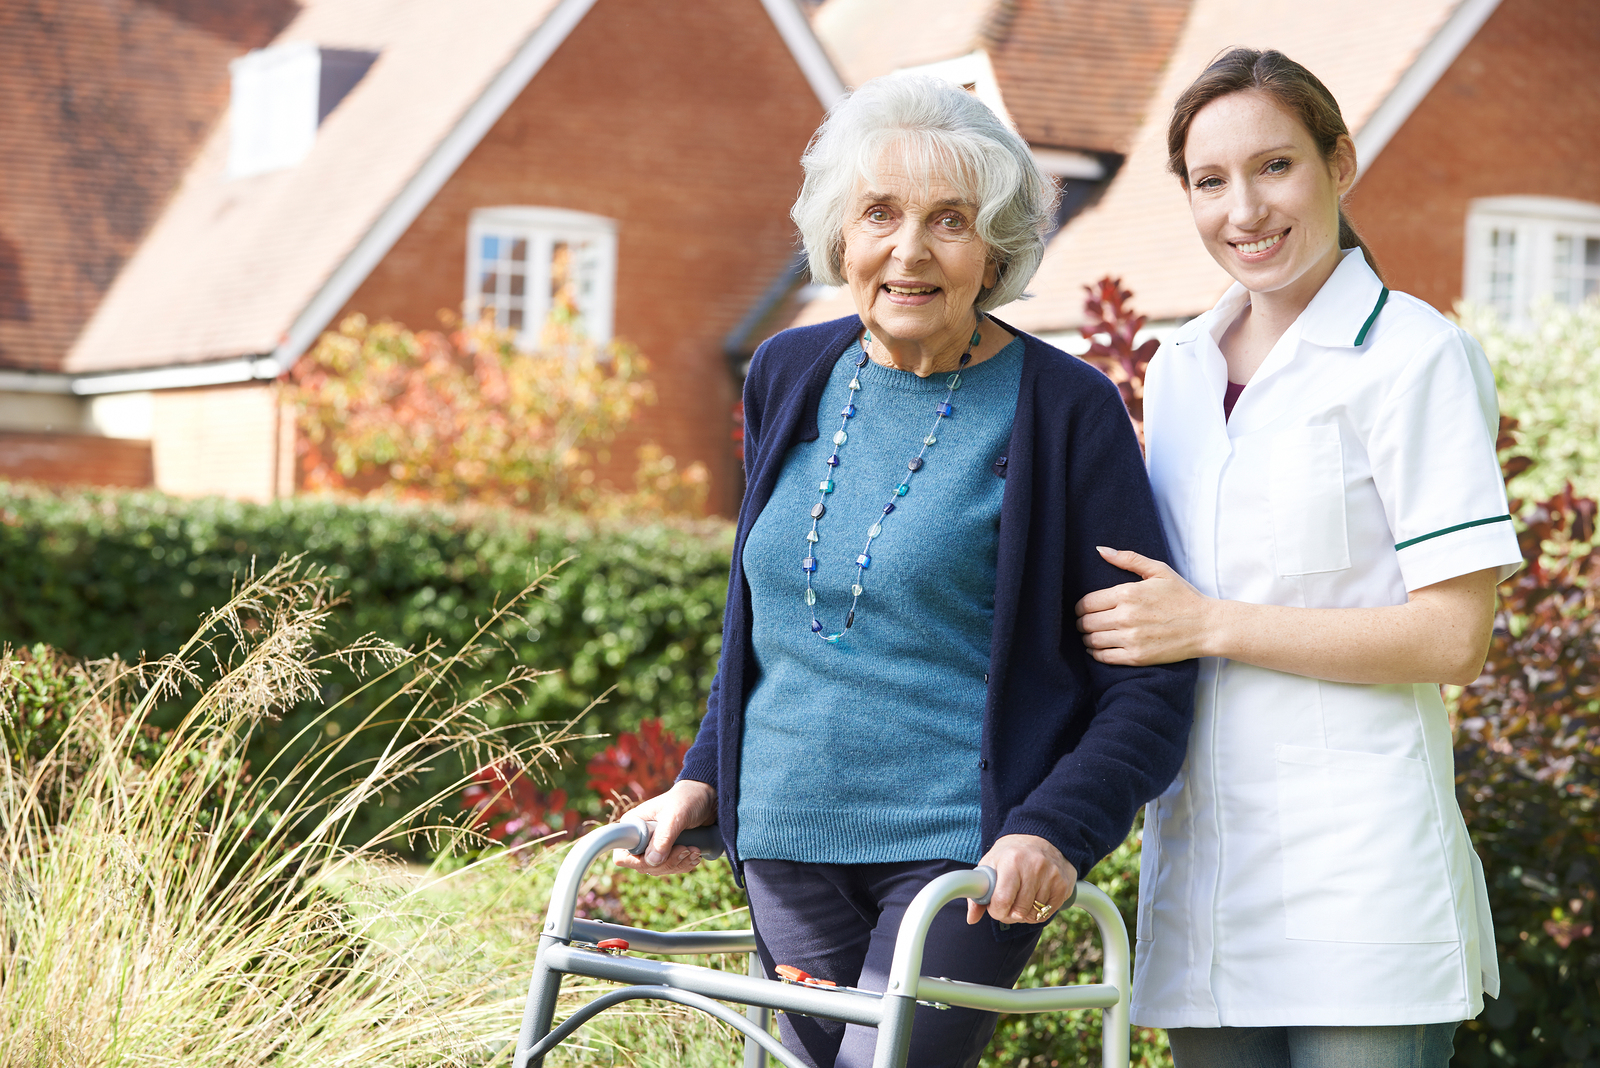 Home Care in Pittsburgh: Let us do the work, while the caregiver takes a break!